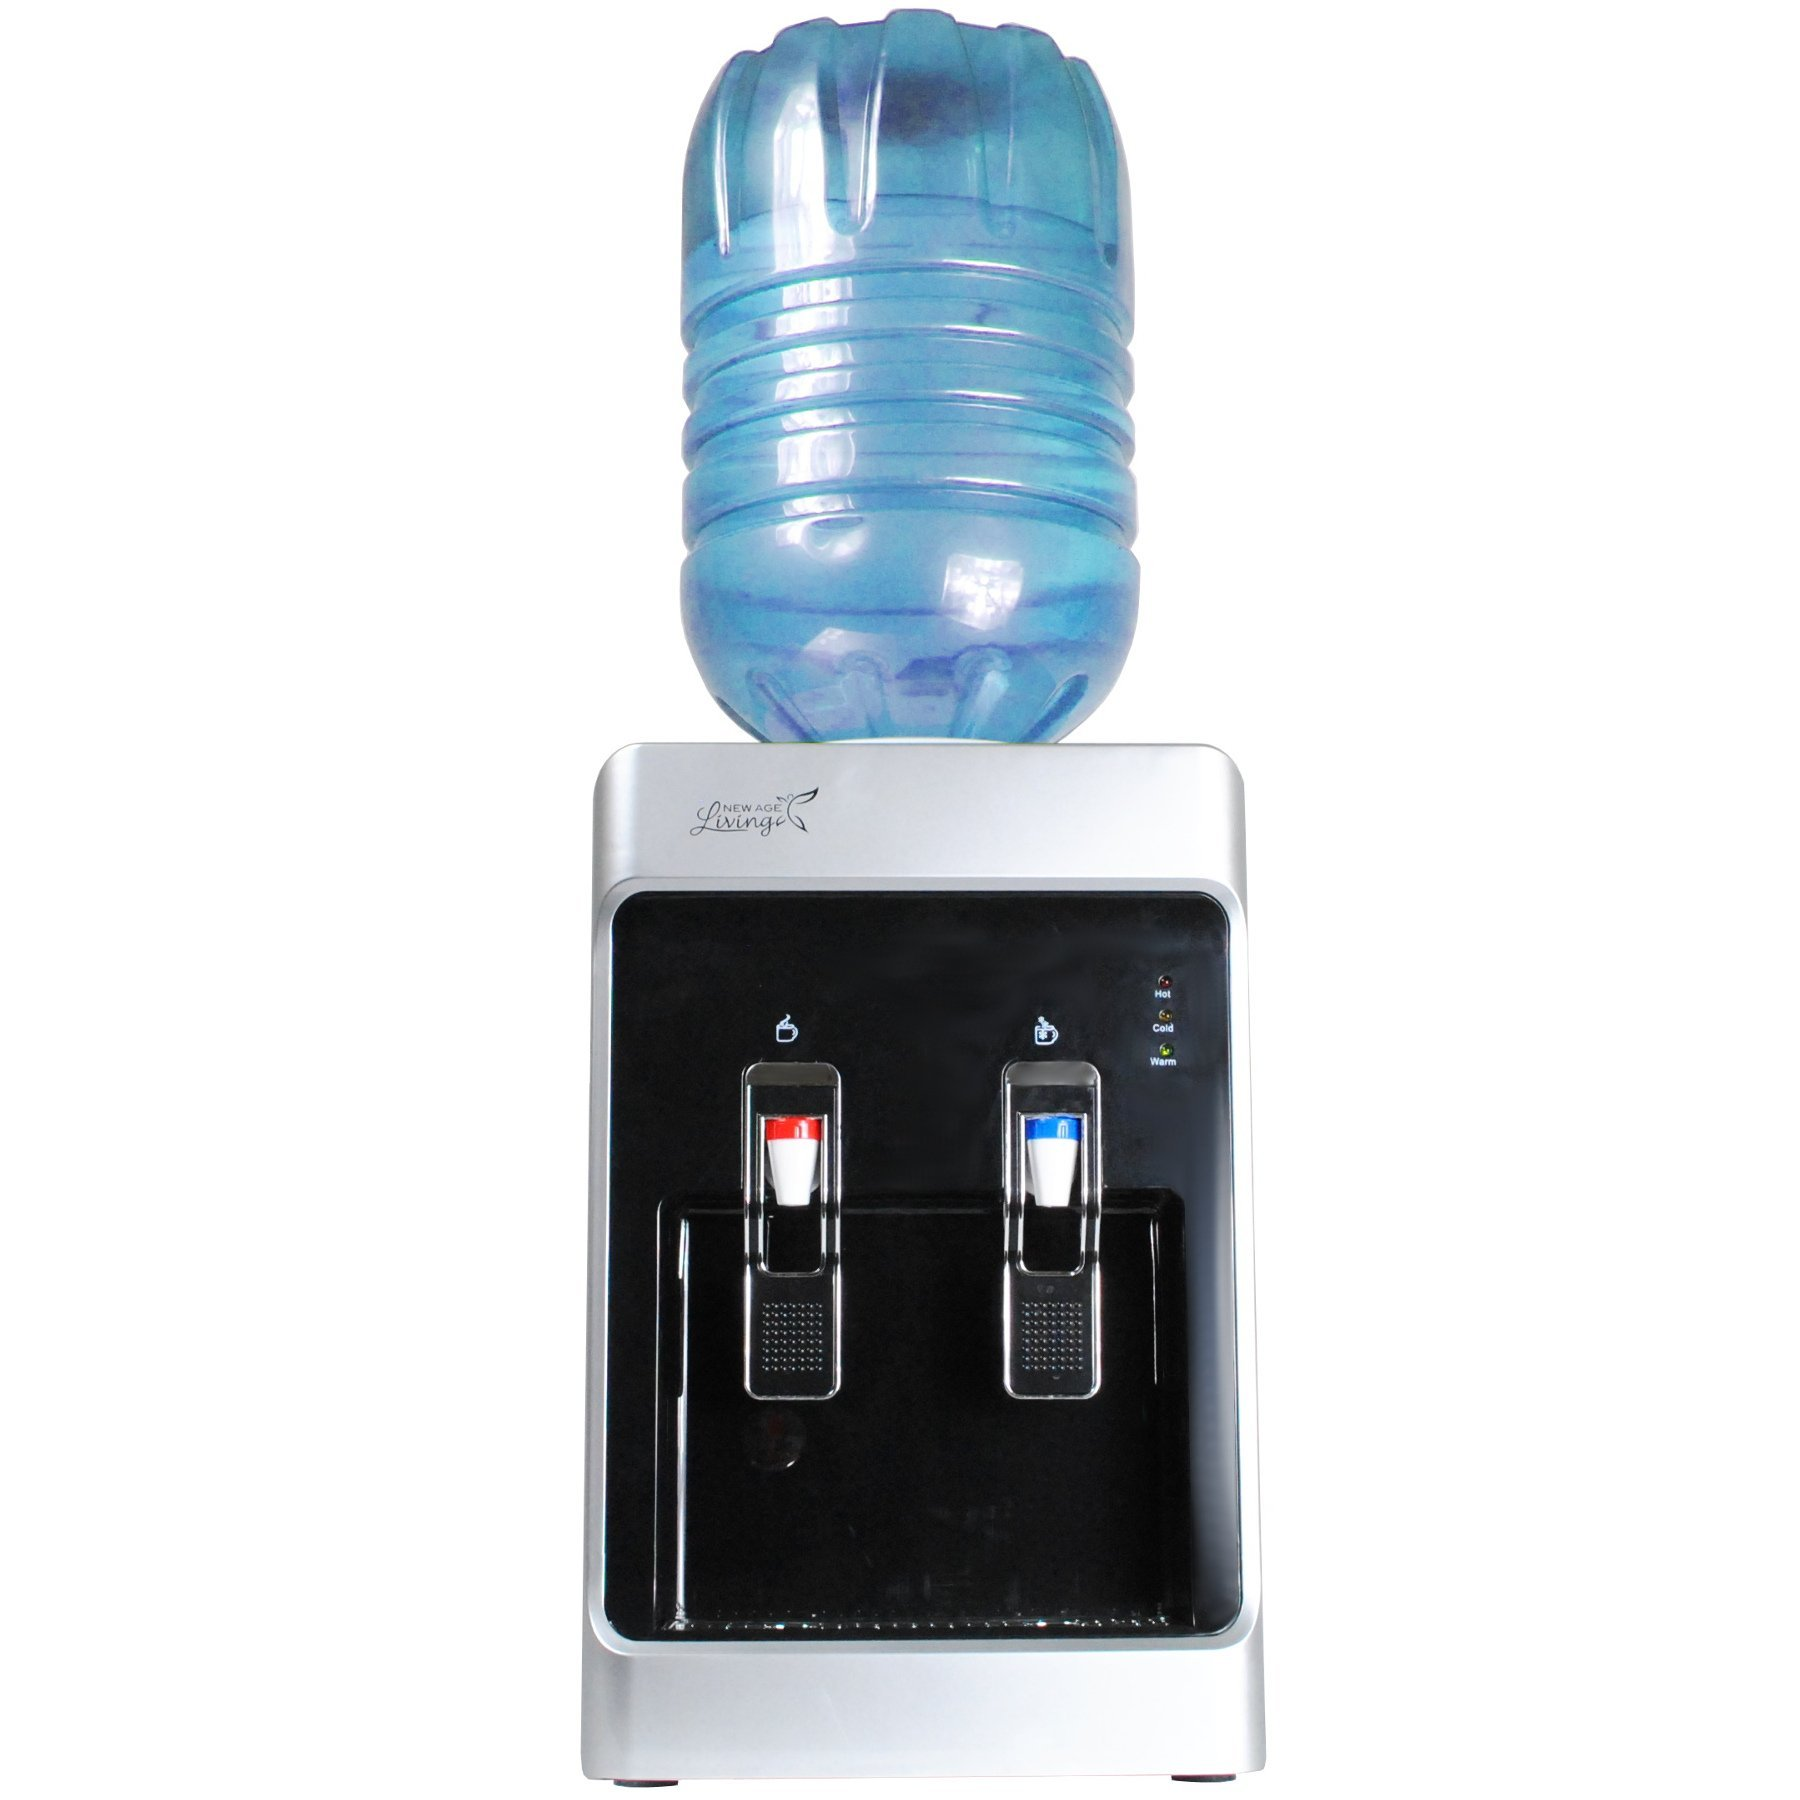 New Age Living 5 Gallon Desktop Cold & Hot Water Dispenser | Fits Standard 3-5 Gallon Water Cooler Bottles | Compact Size For Desk, Countertop, Table | 1 Year Warranty